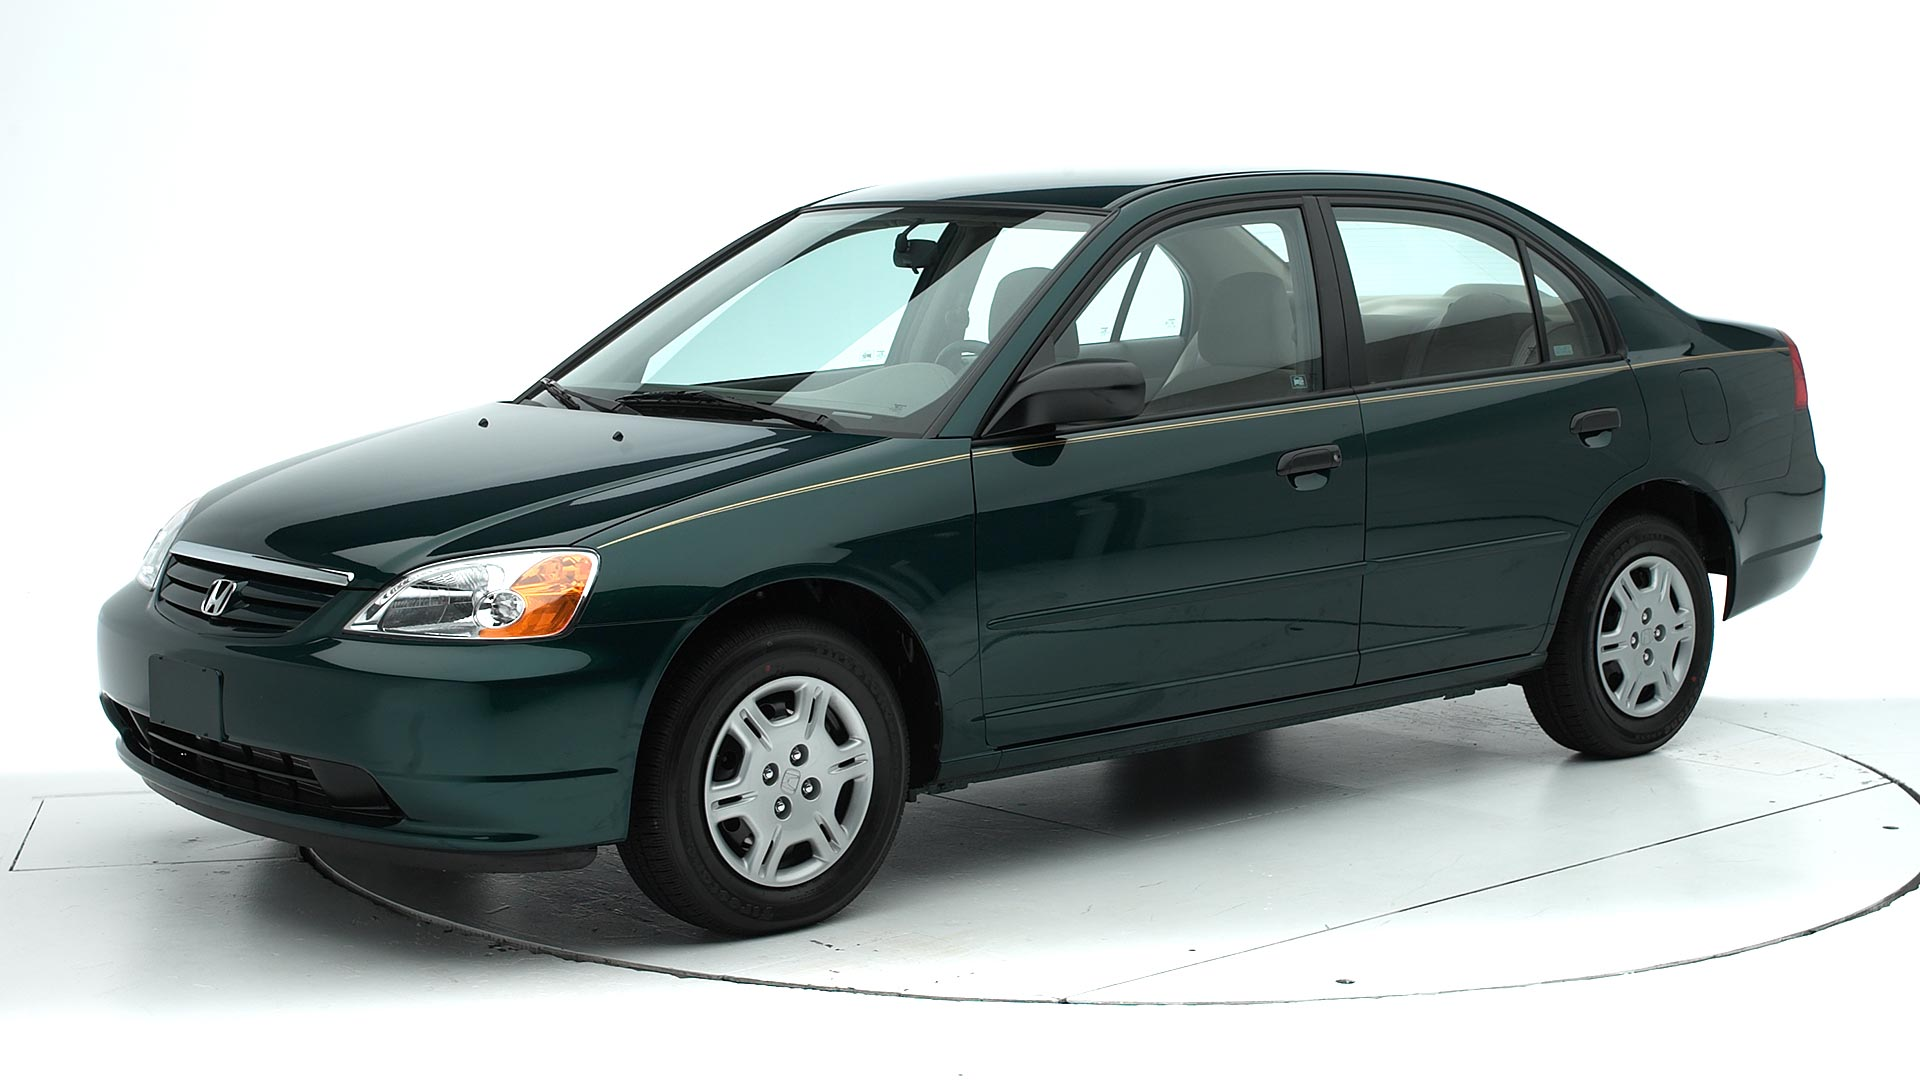 2001 Honda Civic 4-door sedan